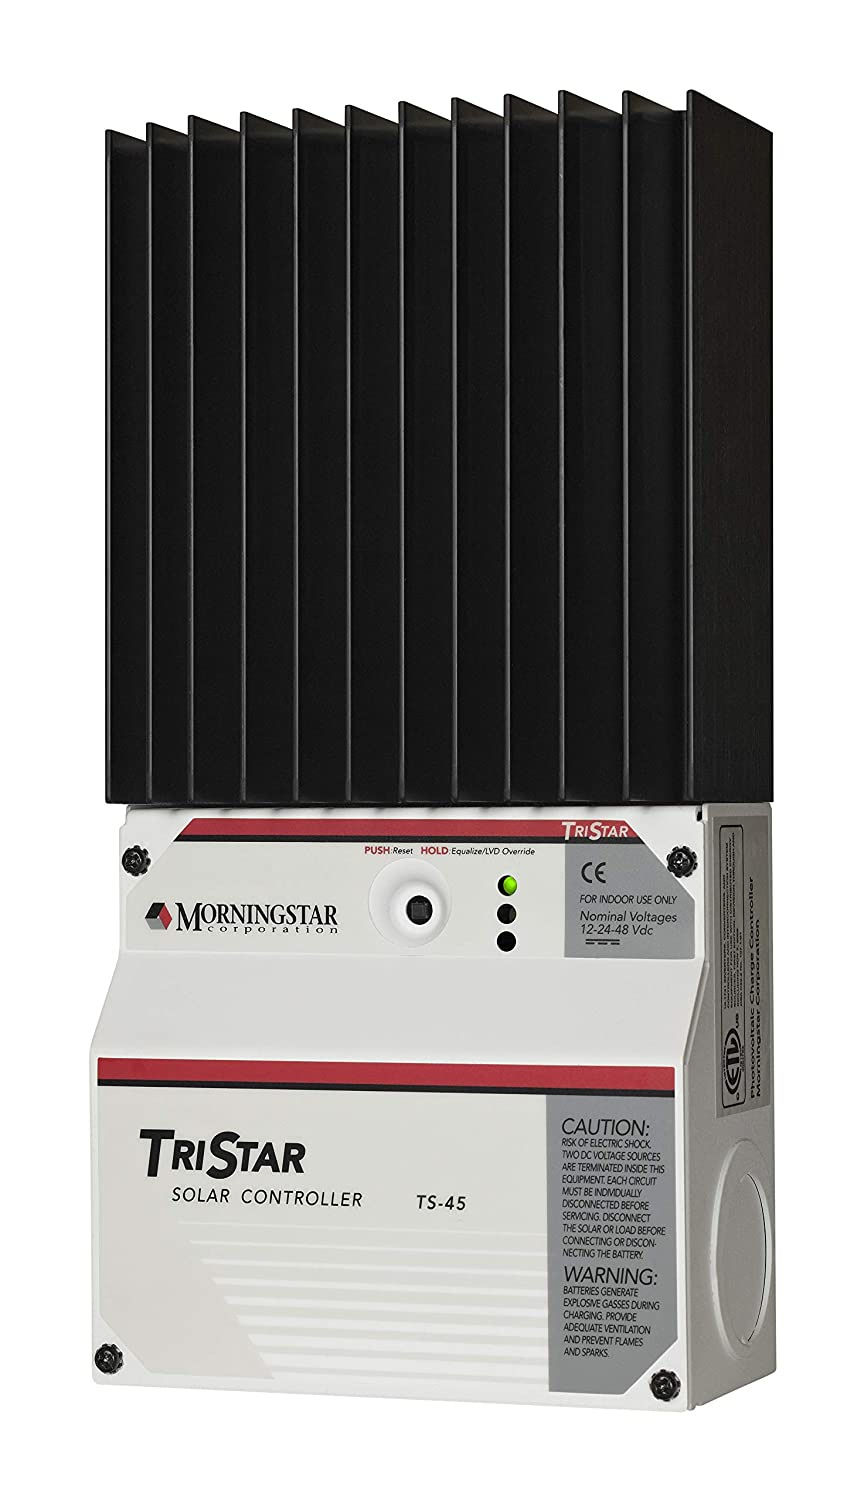 Morningstar TS-45 TriStar 45 Amp 12-48V PWM Solar Controller Extensive Electronic Protections Ratings to 45A at 12VDC Communications Capability Fully Adjustable Programmable Lighting Control